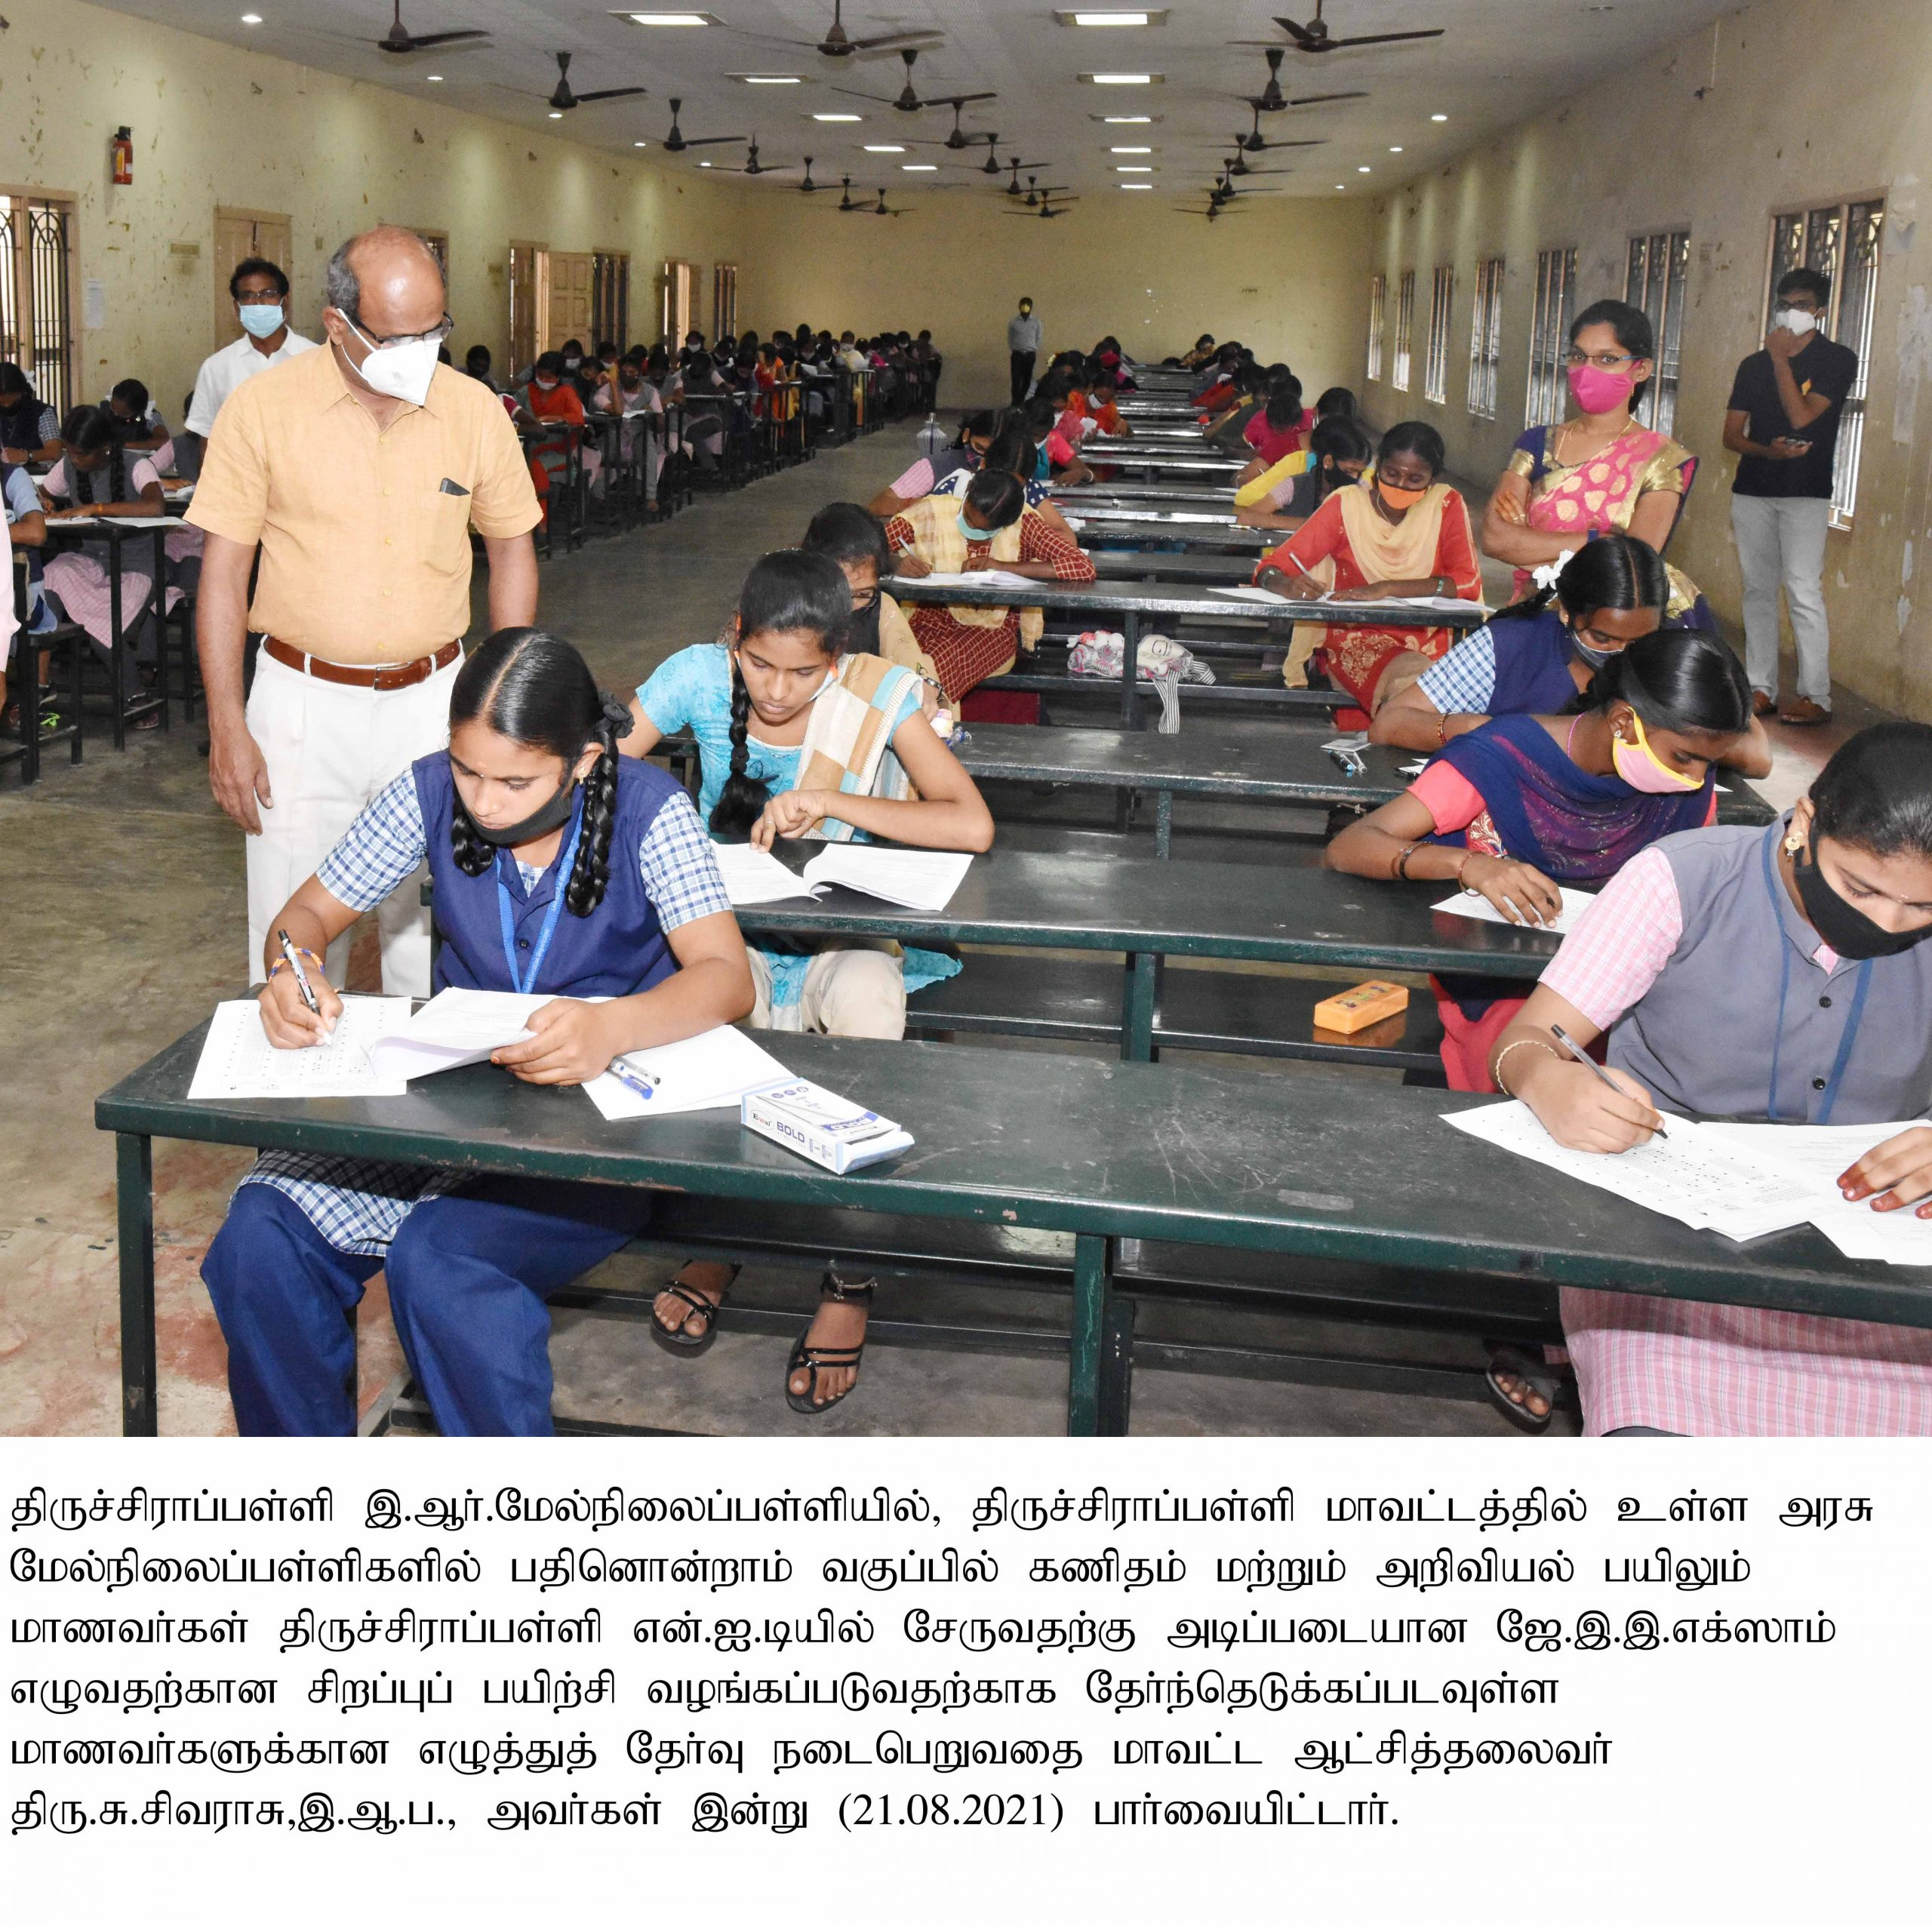 District Collector Inspected JEE Exam conducted on 21-08-2021